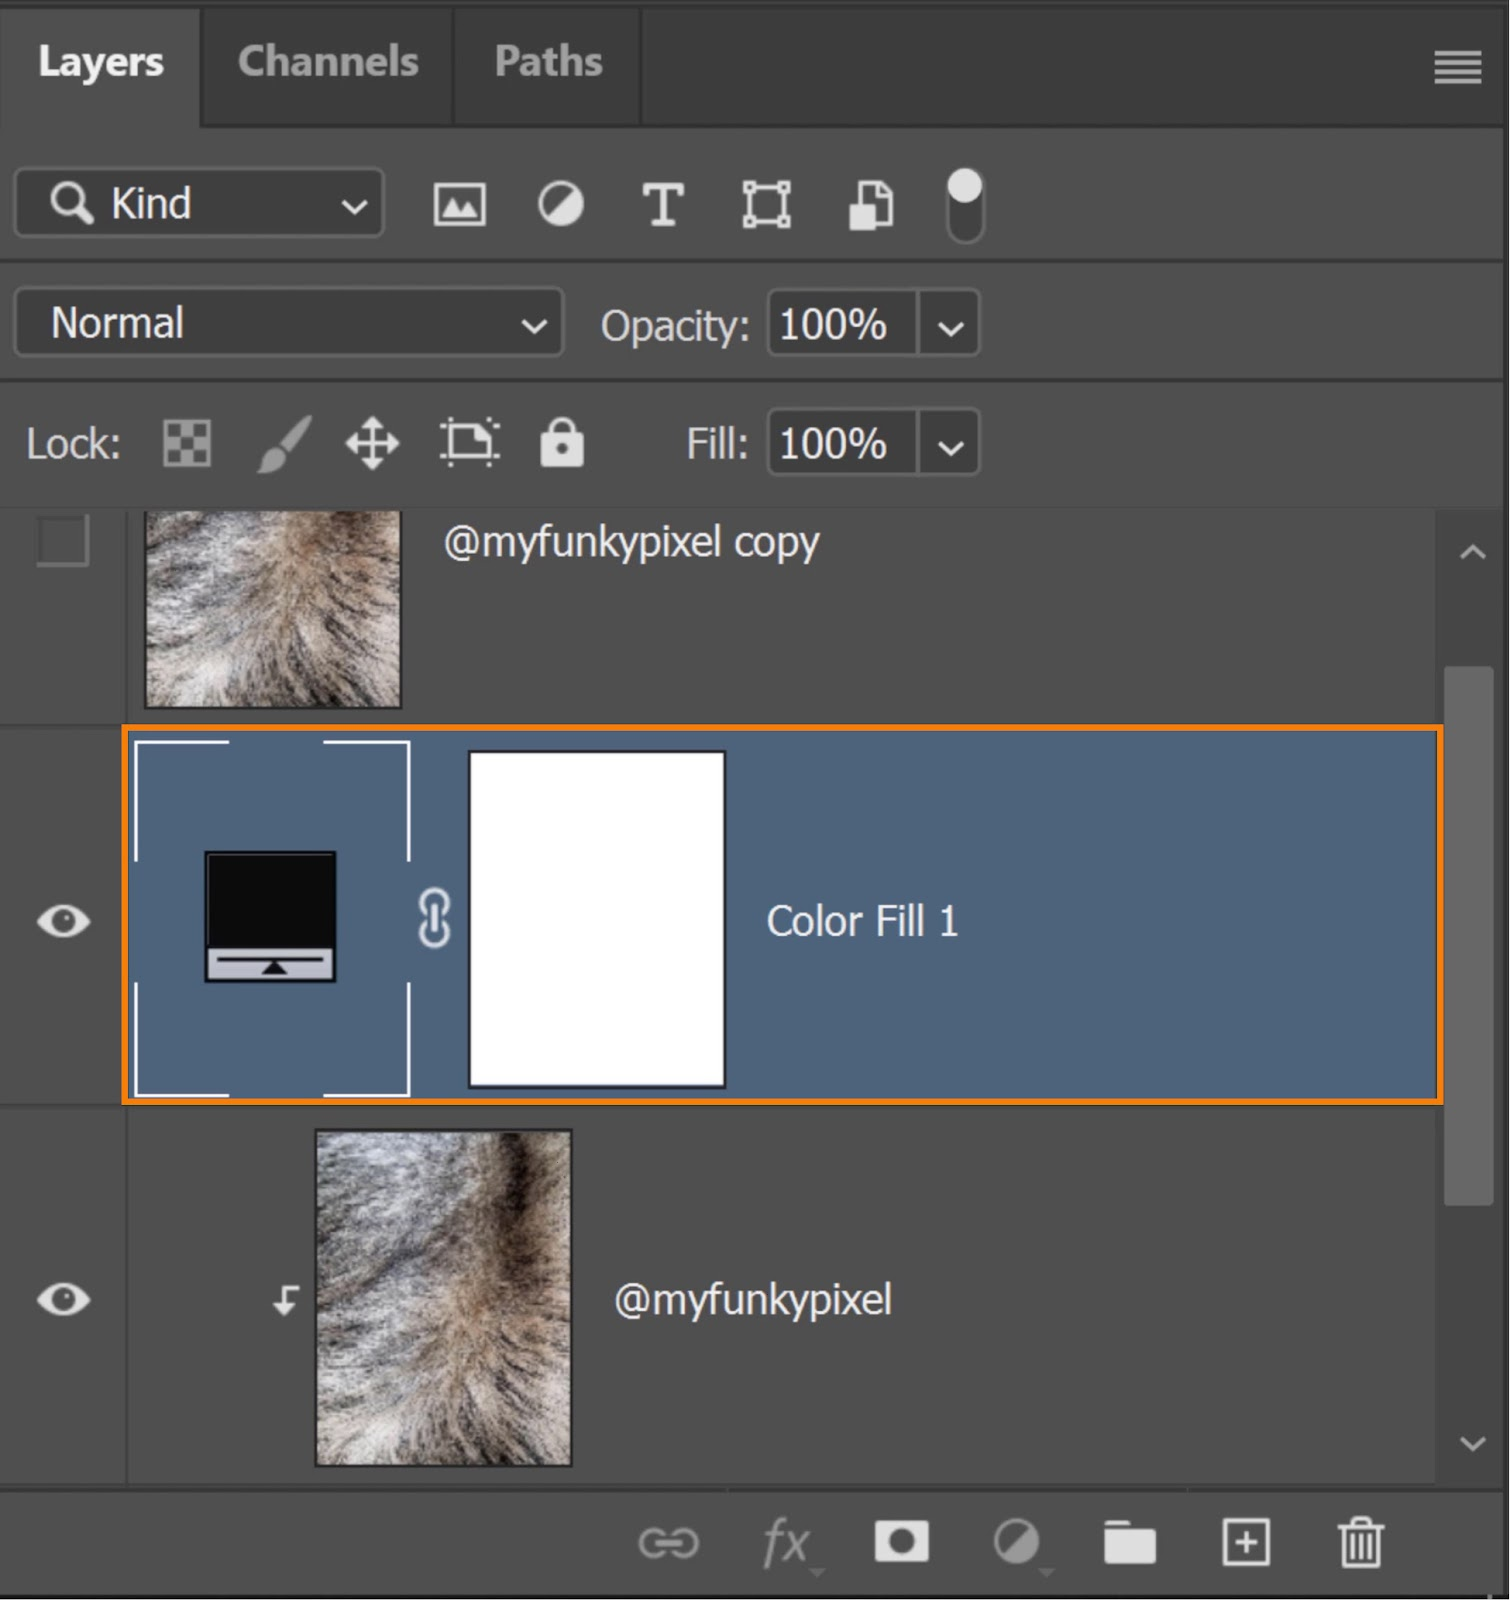 Place the Color Fill layer at the bottom of the layer stack